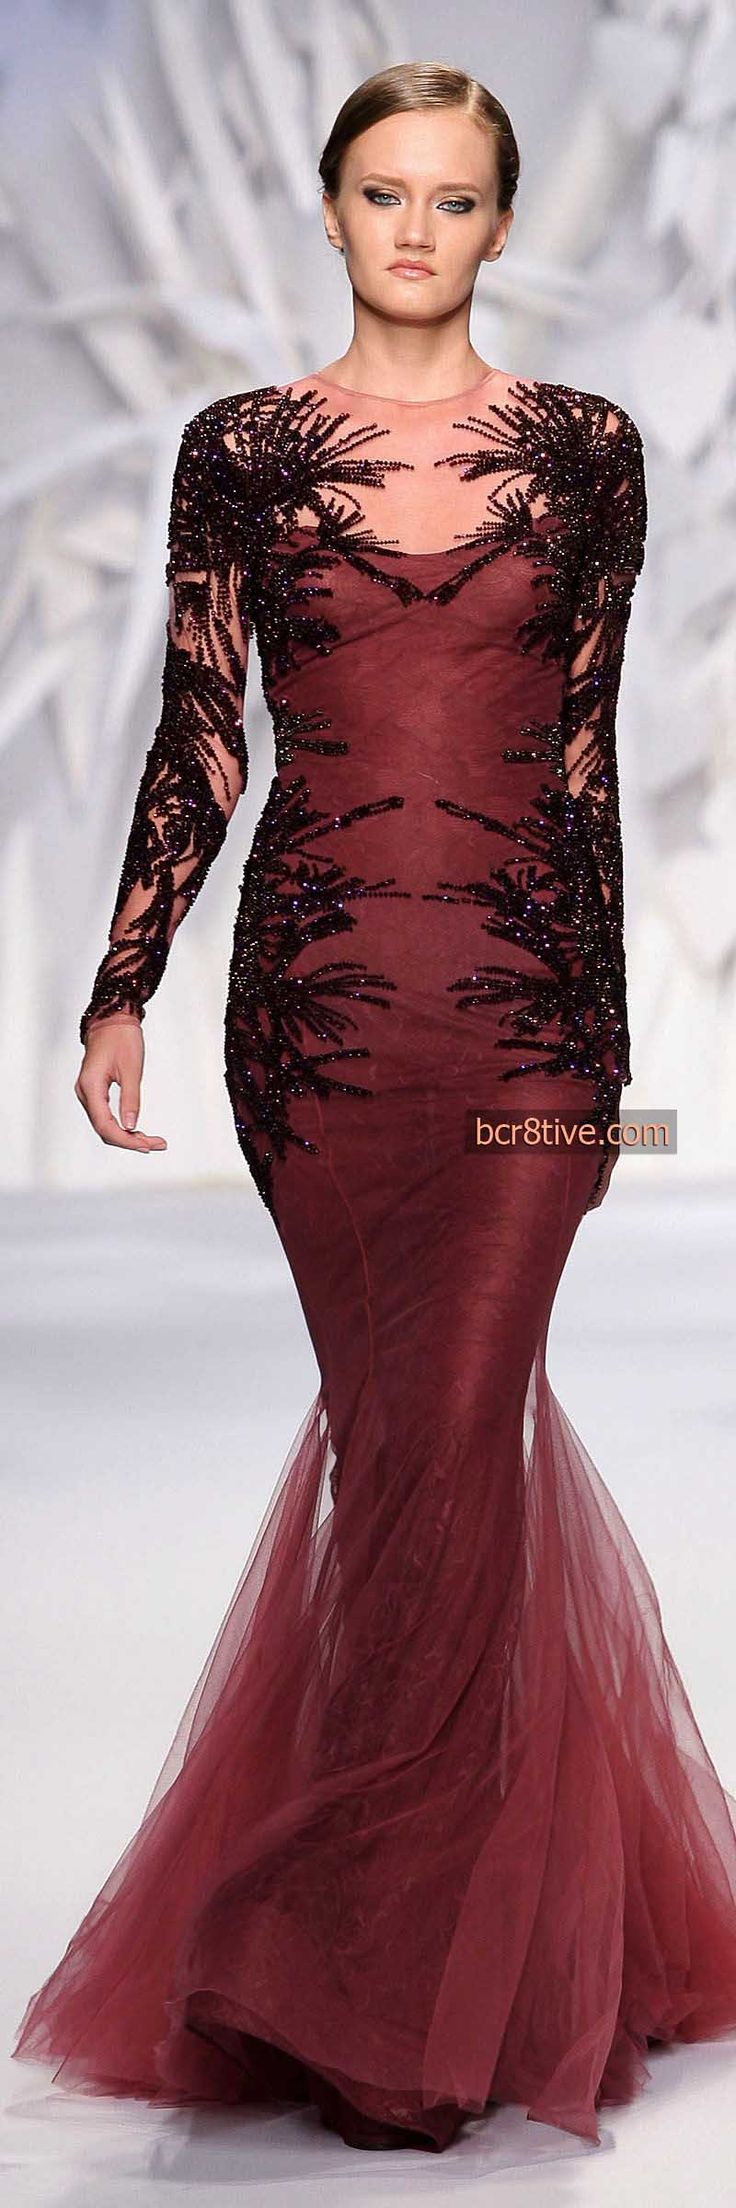 Abed Mahfouz Fall Winter 2014 Haute Couture